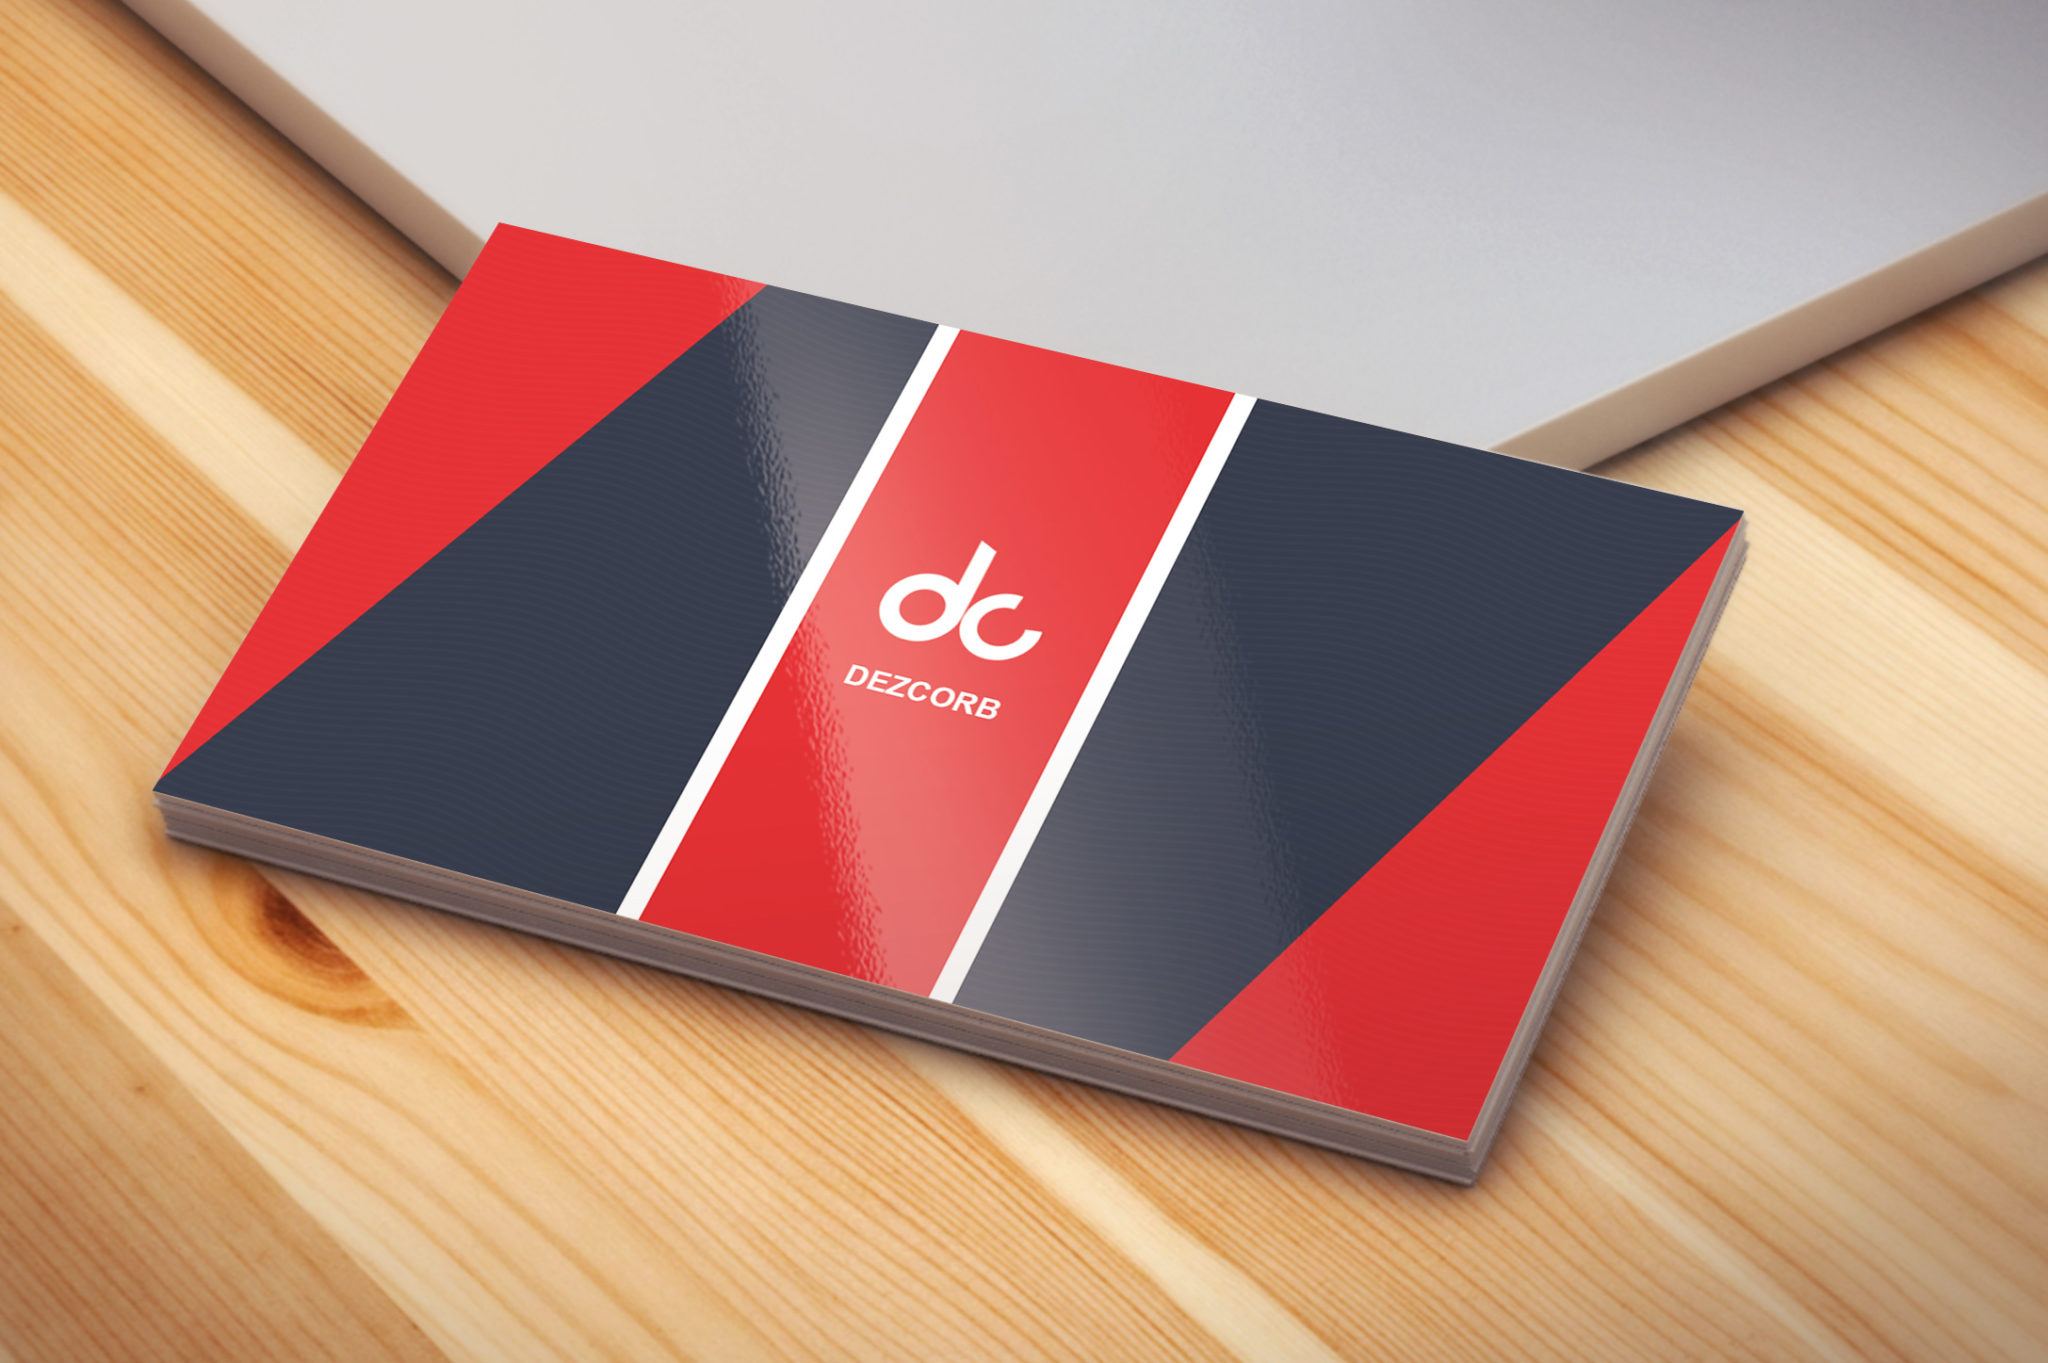 Uncategorized archives dezcorb 1 how to design a business card in photoshop cs6 magicingreecefo Image collections